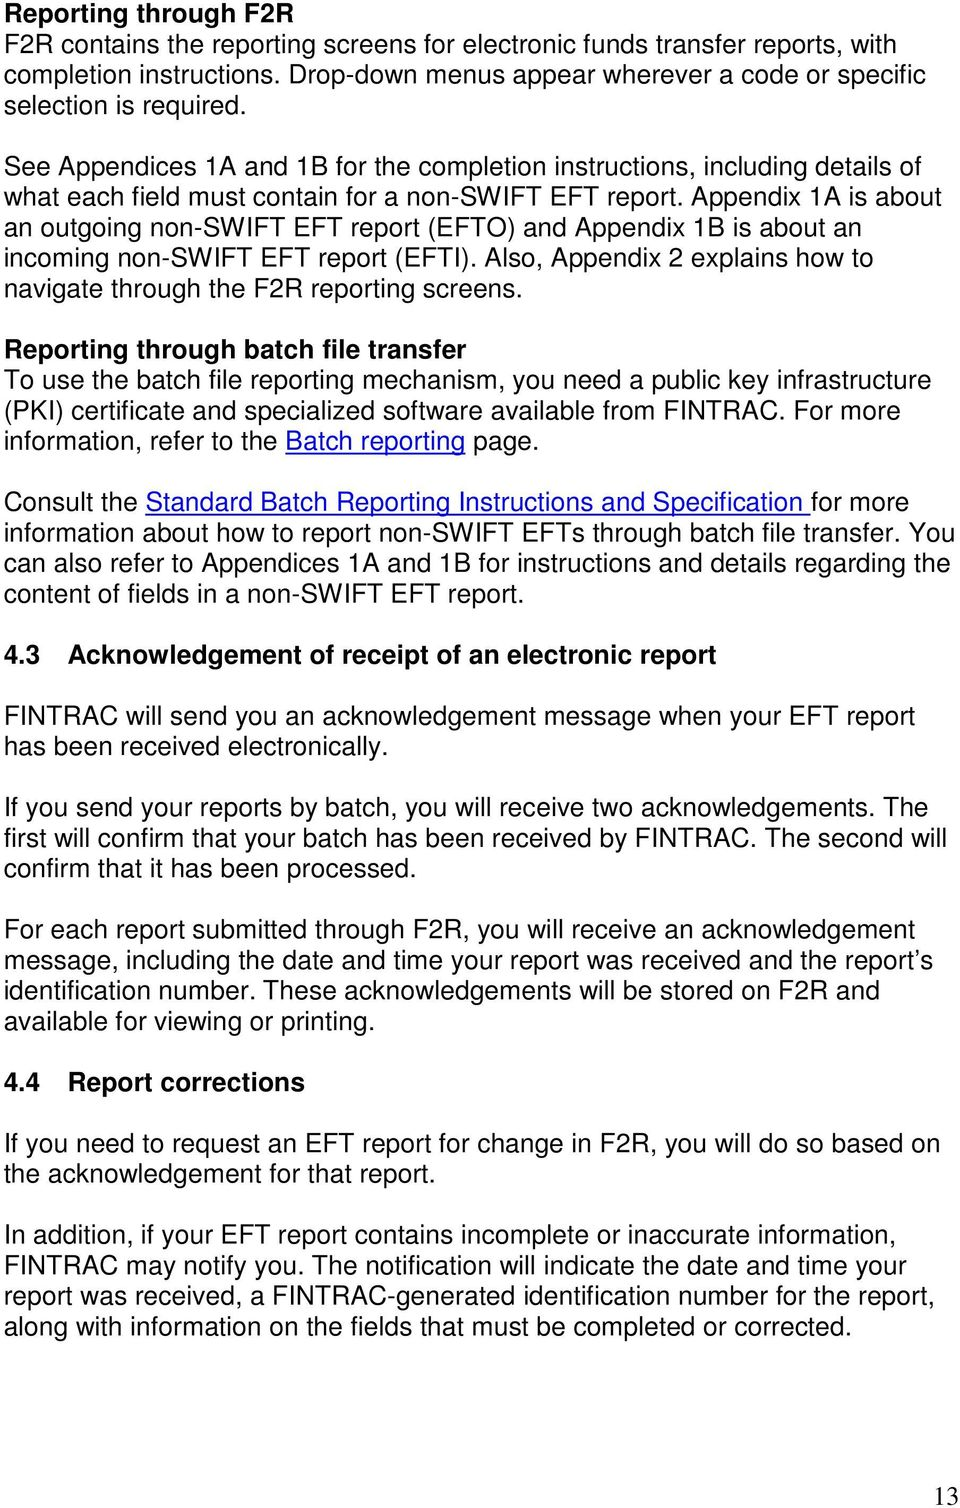 Appendix 1A is about an outgoing non-swift EFT report (EFTO) and Appendix 1B is about an incoming non-swift EFT report (EFTI).